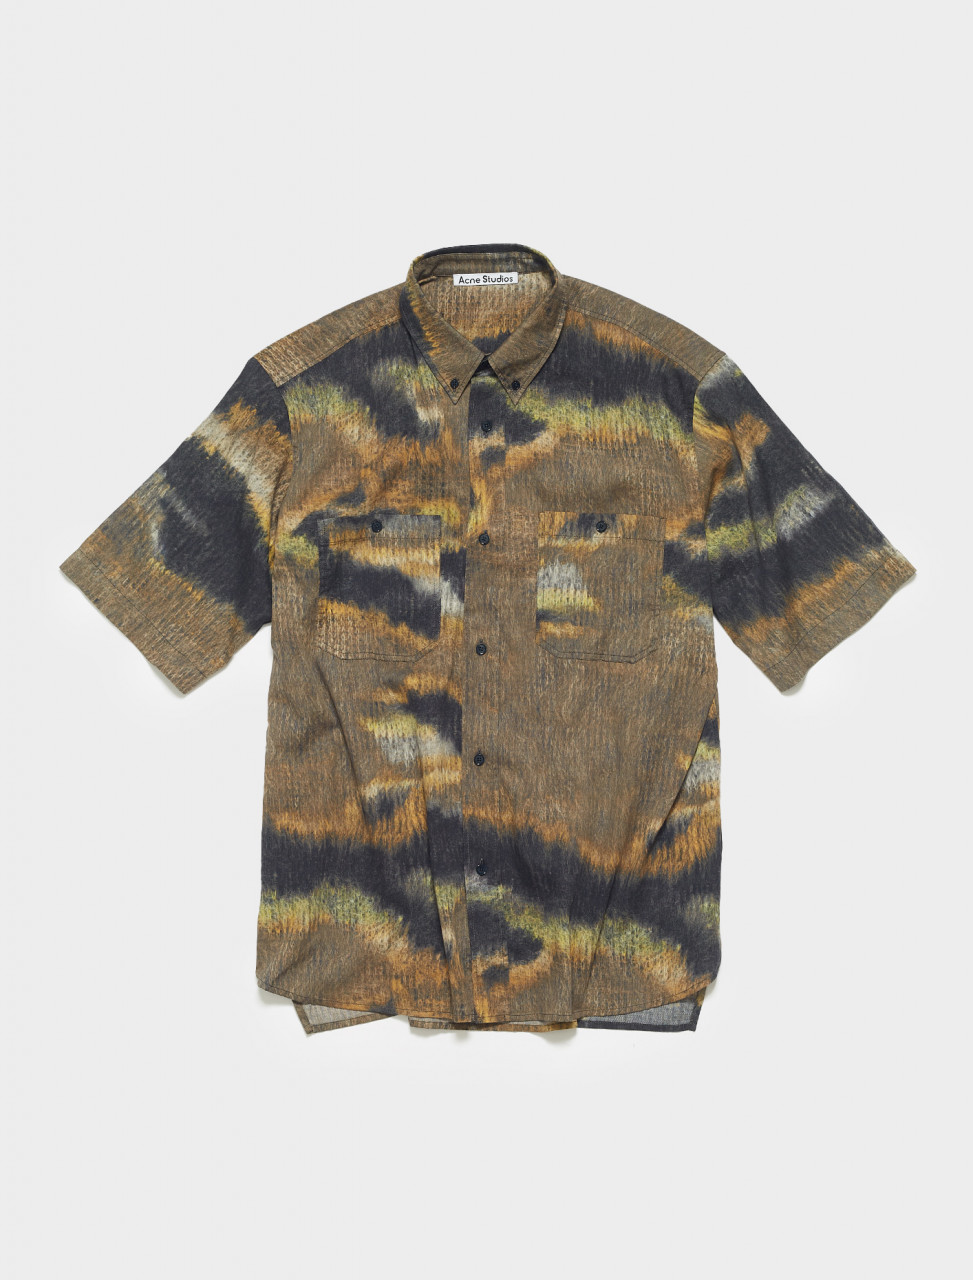 BB0358-AHB ACNE STUDIOS SANPER FUR SHORT SLEEVE SHIRT IN BROWN BLACK